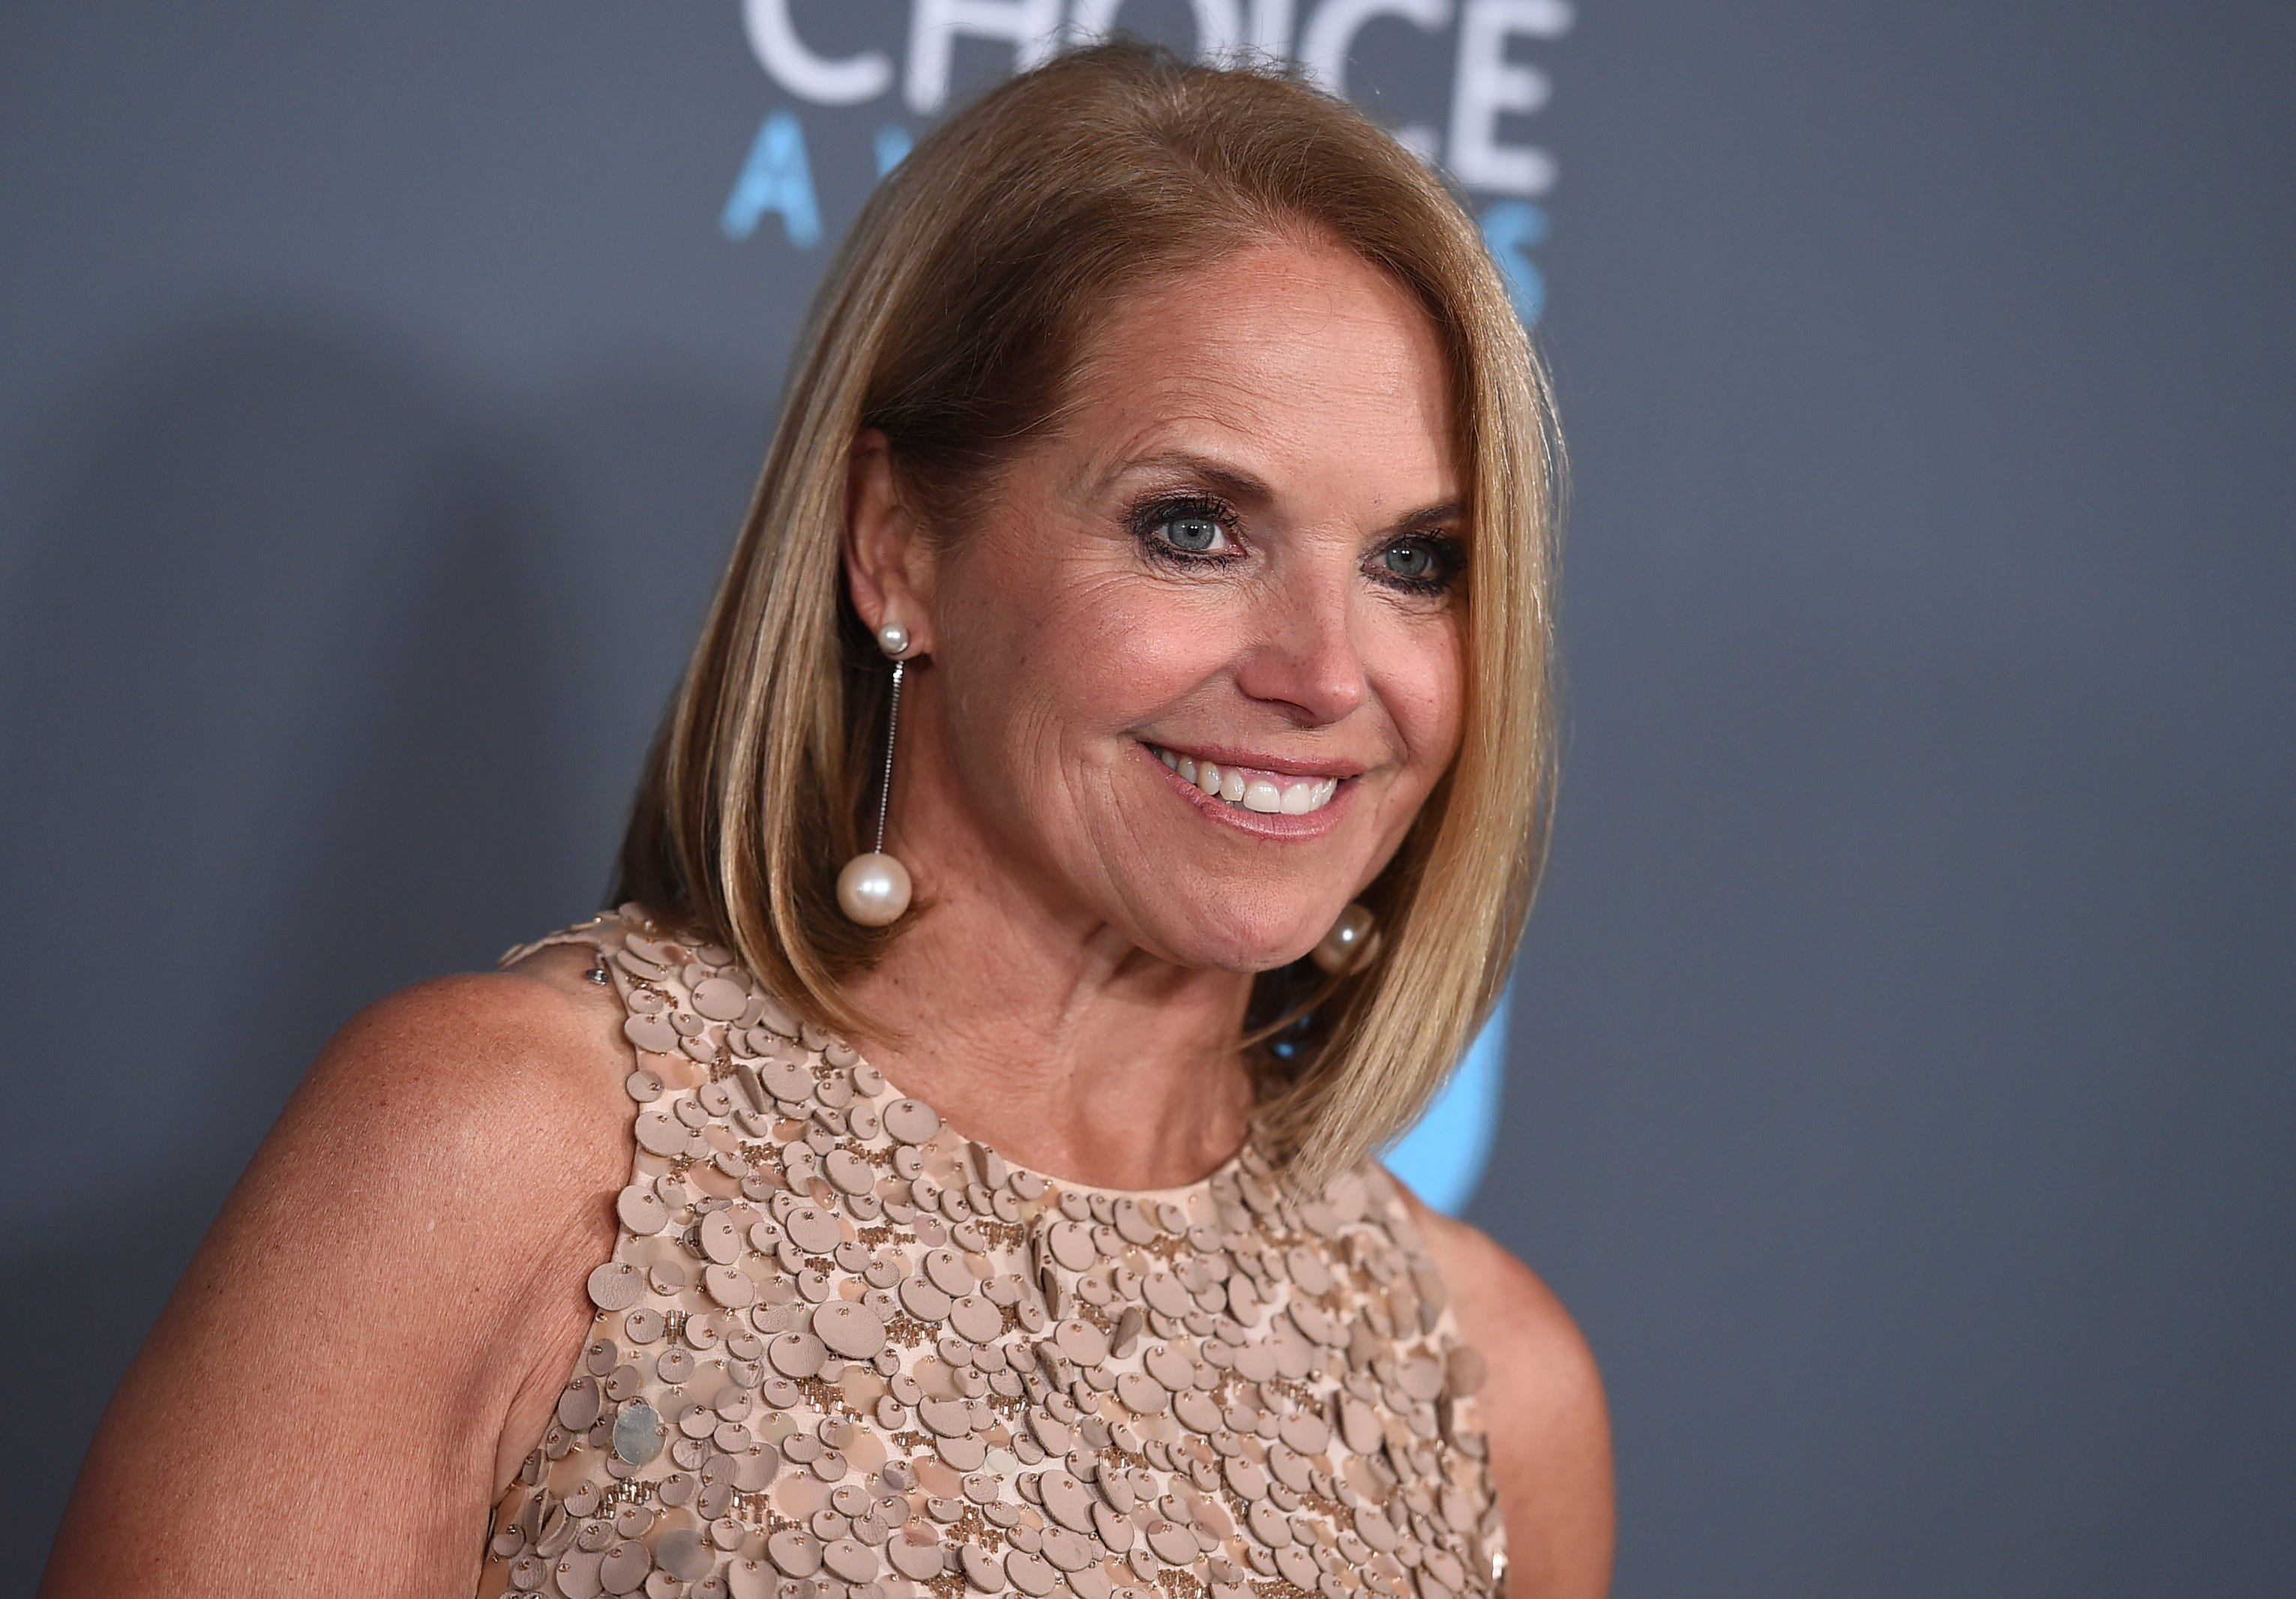 Katie Couric poses without makeup: How to feel beautiful and embrace aging